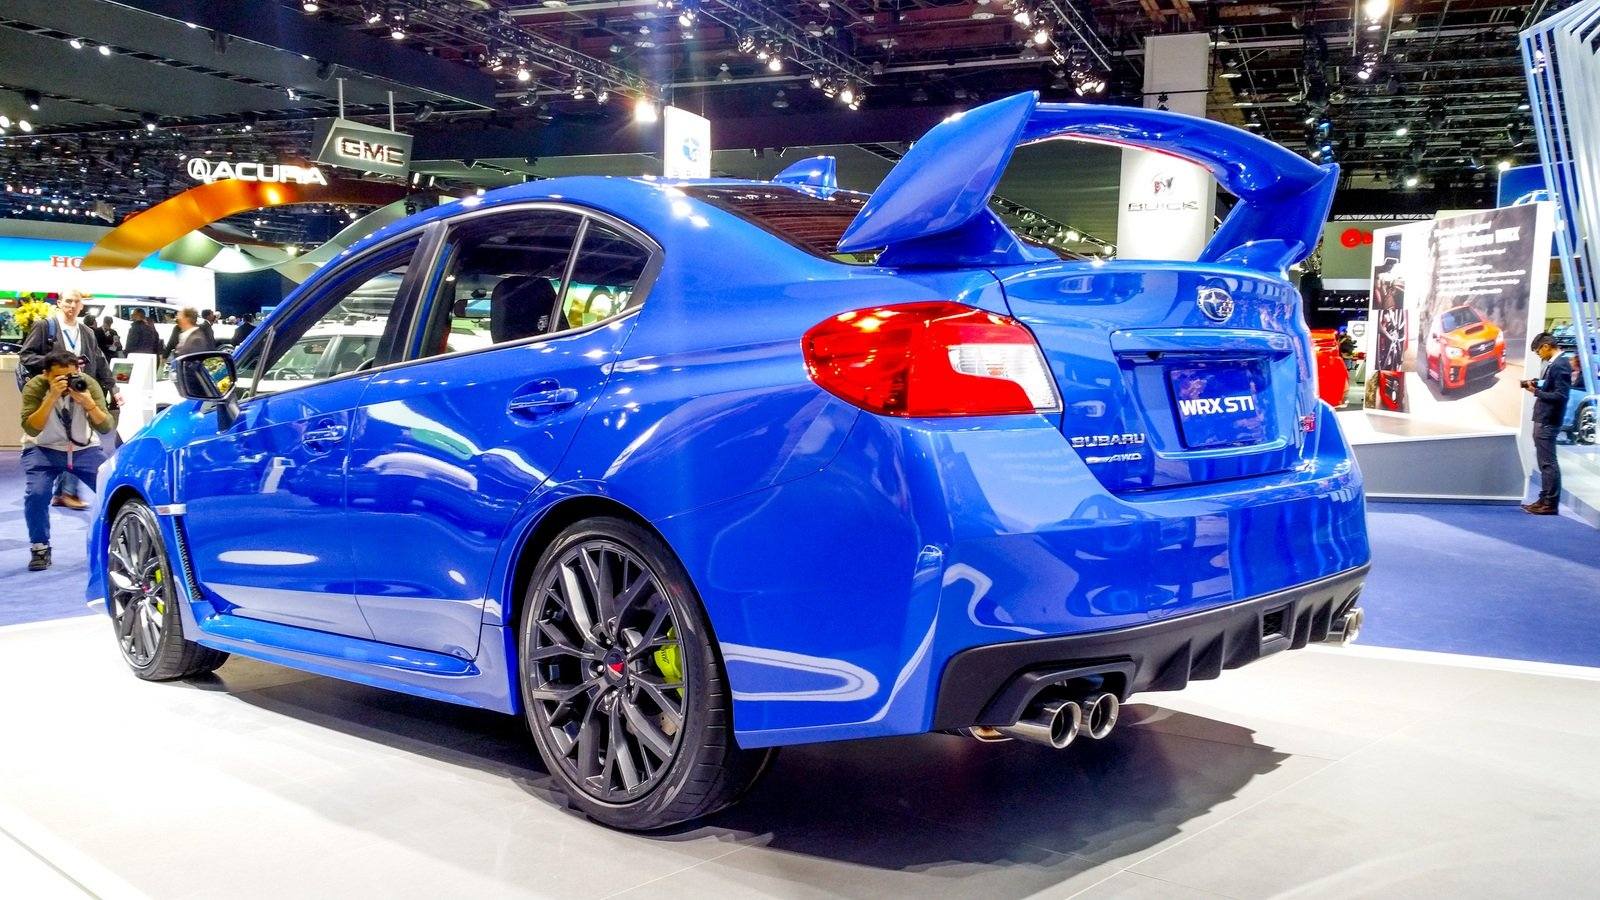 2018 subaru wrx sti picture 702506 car review top speed. Black Bedroom Furniture Sets. Home Design Ideas